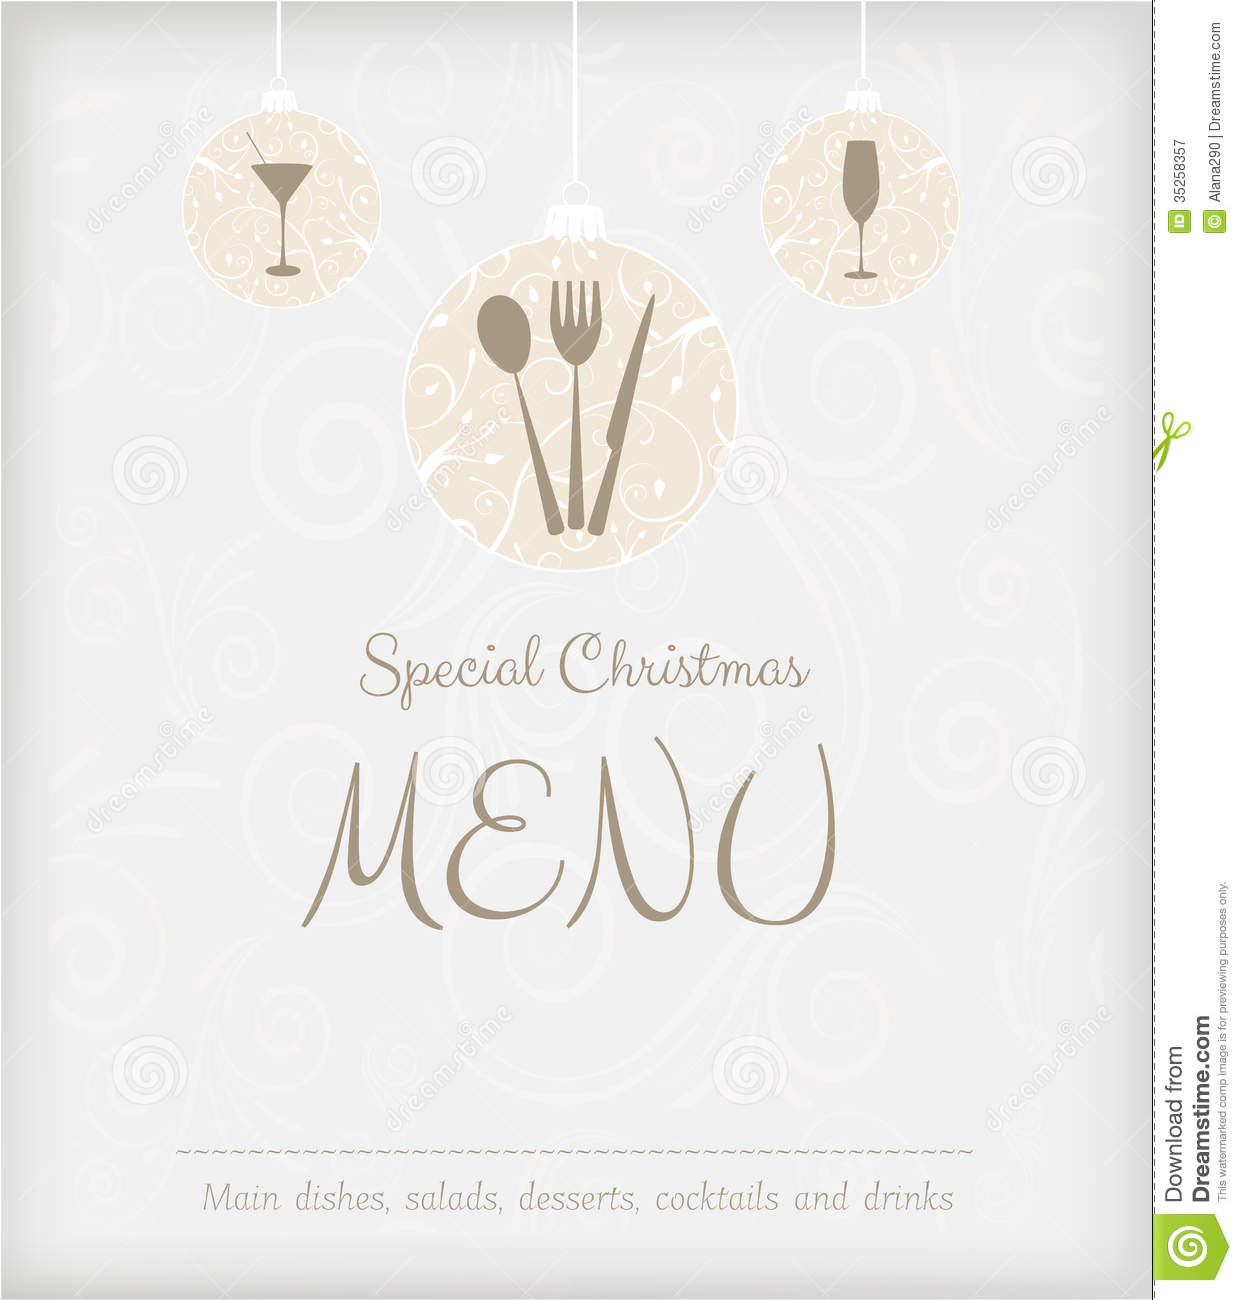 special christmas menu design stock vector illustration of food